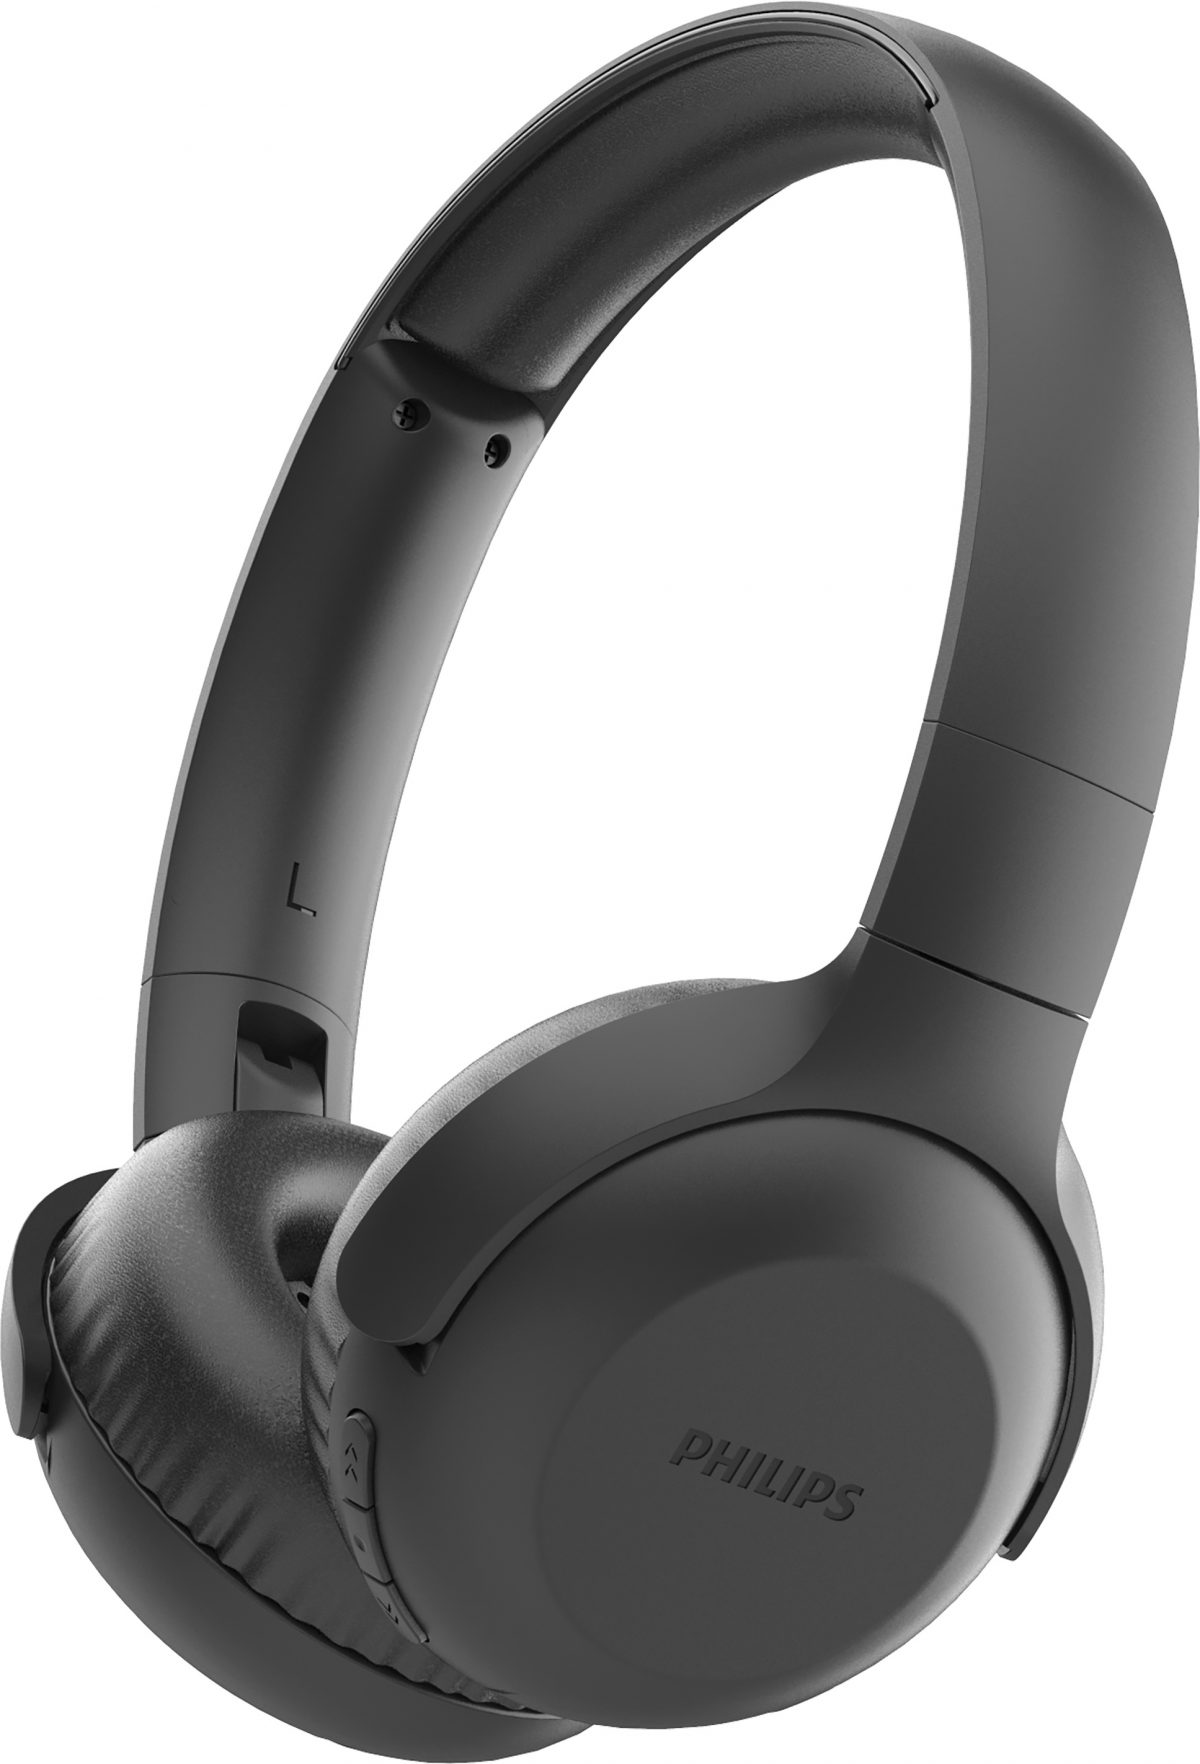 on-ear philips headphones - father's day gifts